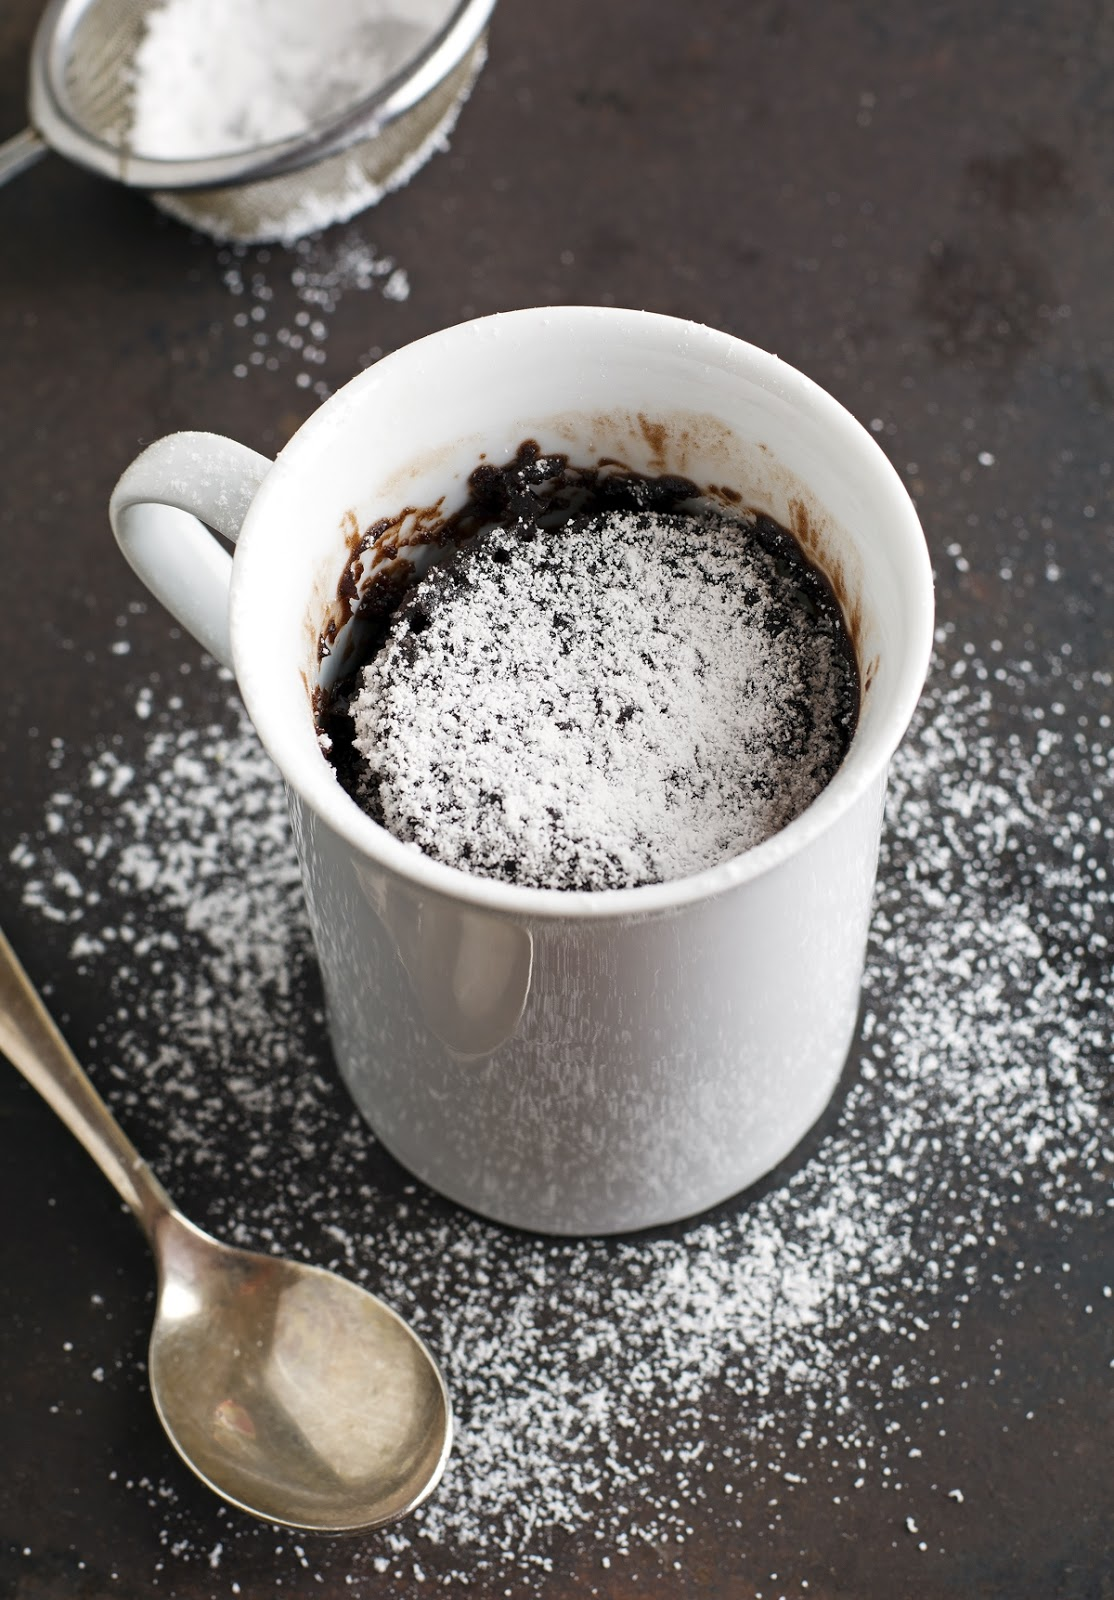 (Vegan) Easy 3-Minute Brownie In A Mug